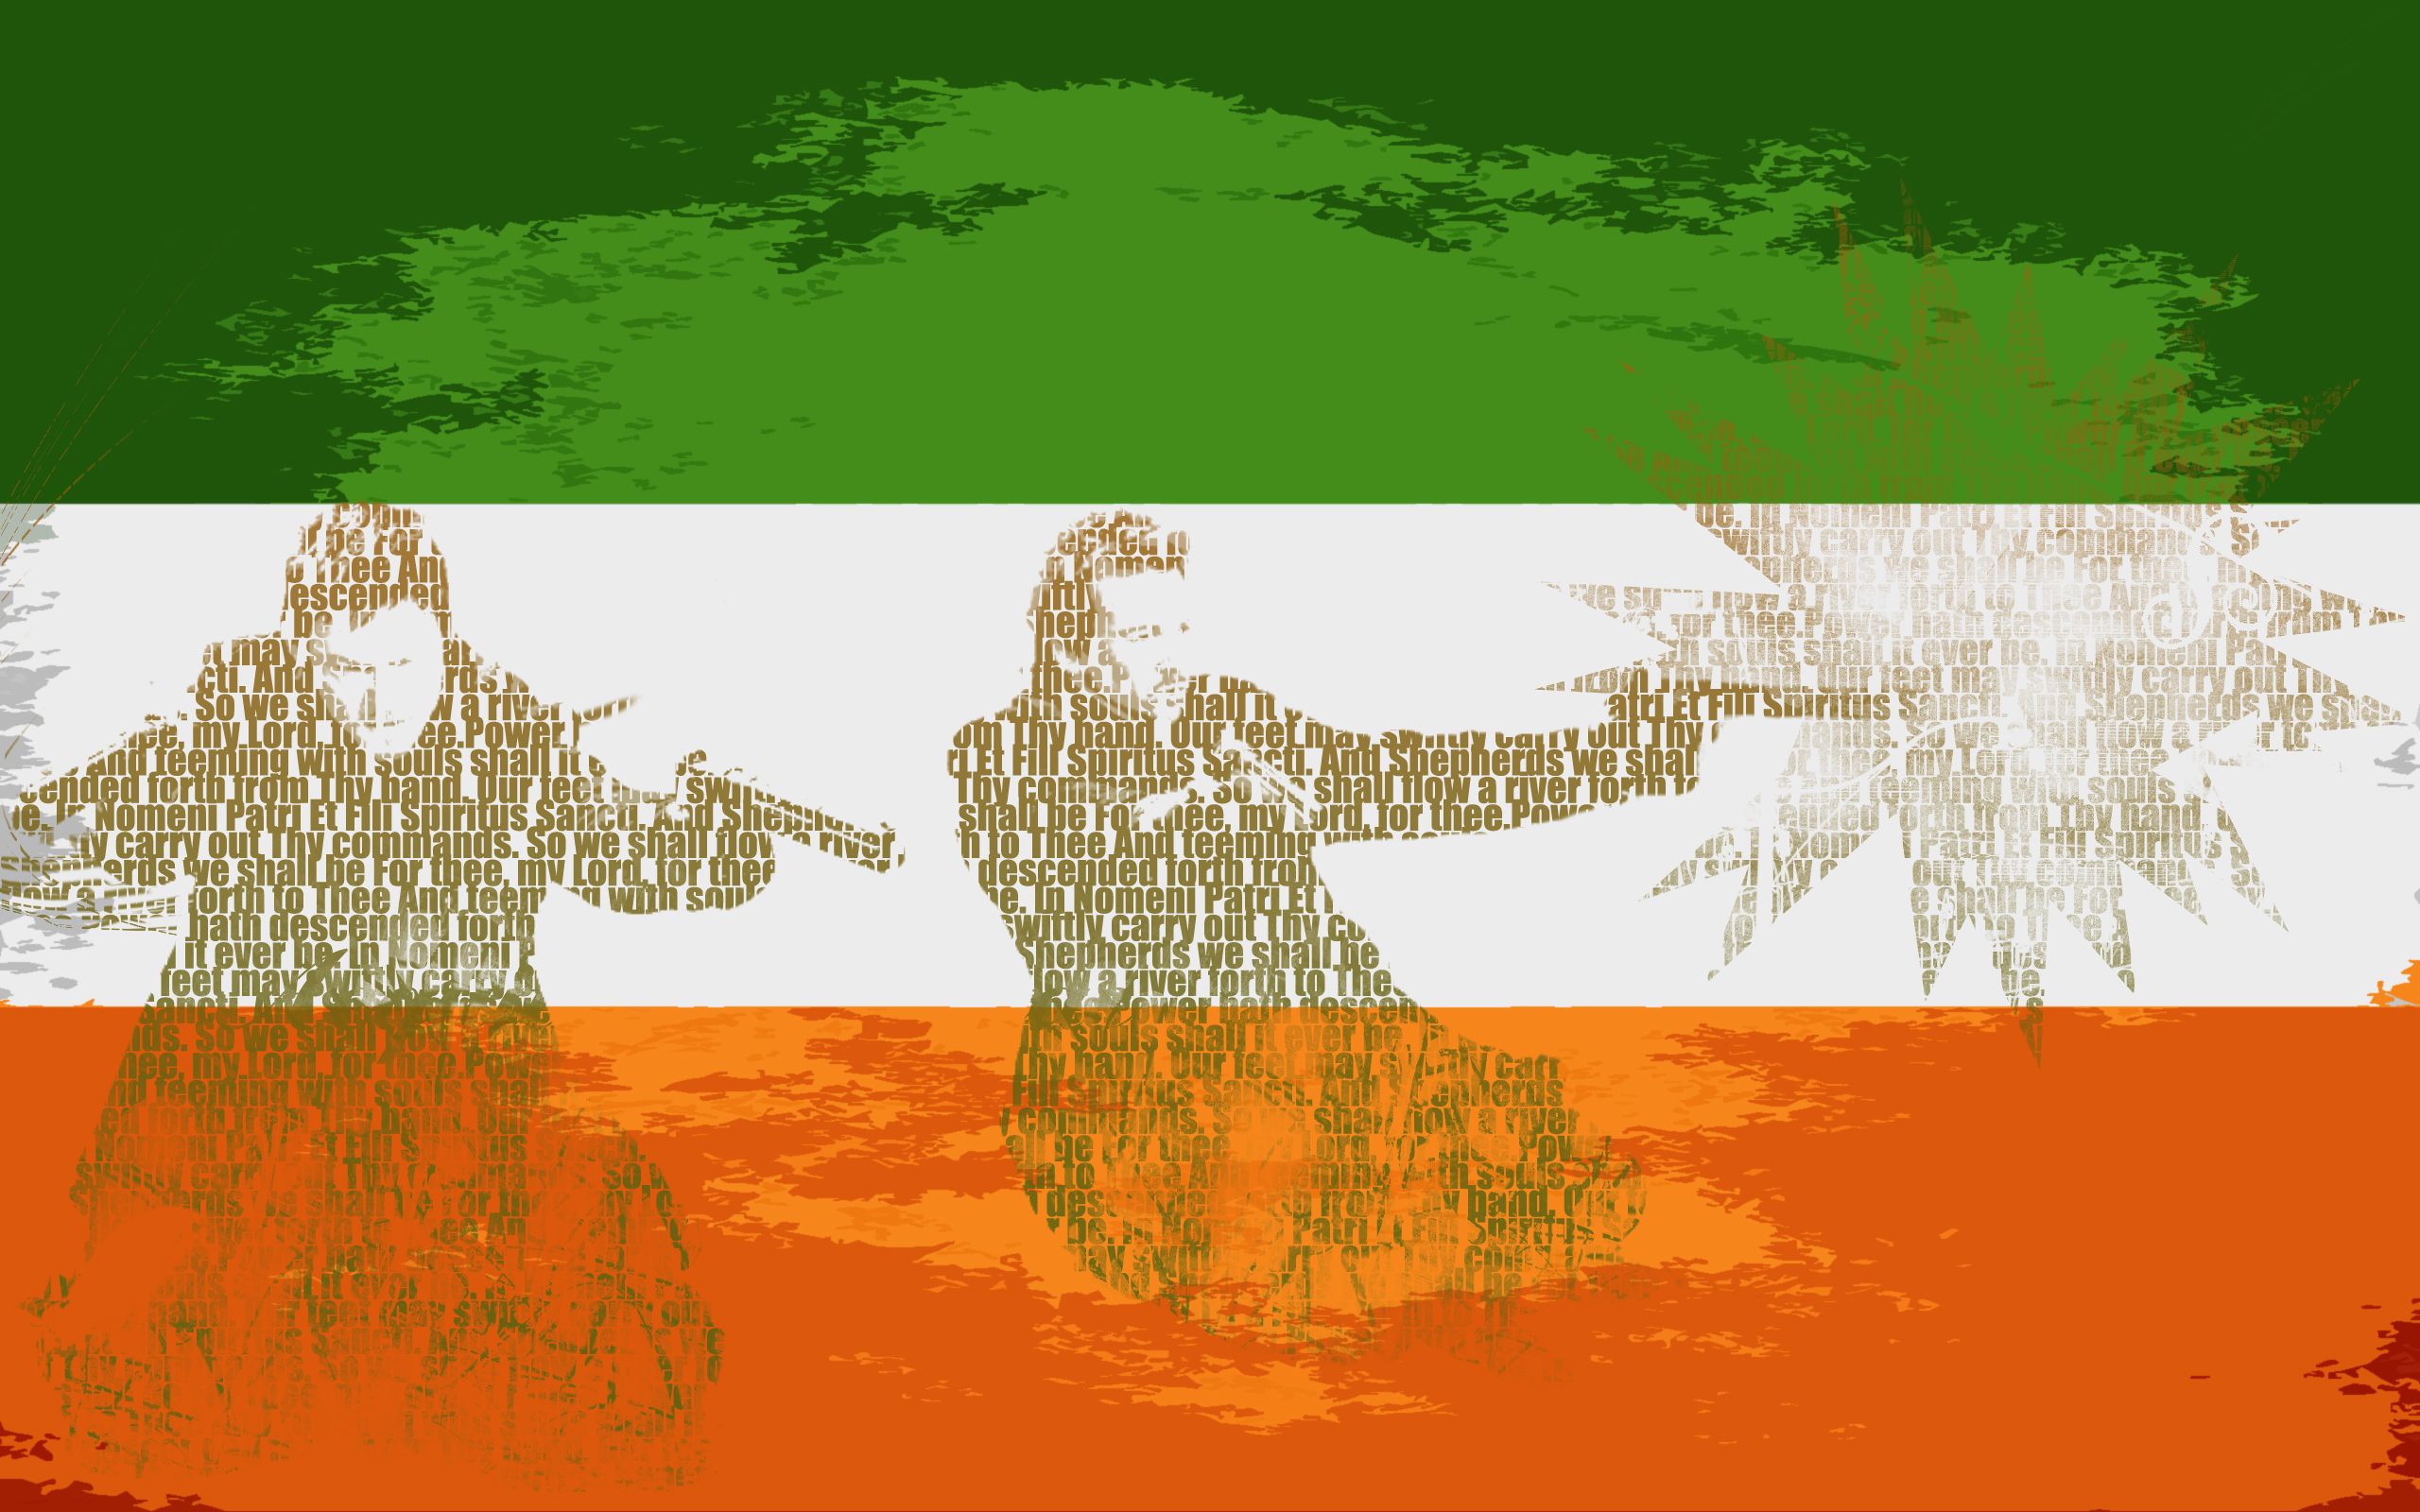 2560x1600 Boondock Saints desktop PC and Mac wallpaper 2560x1600